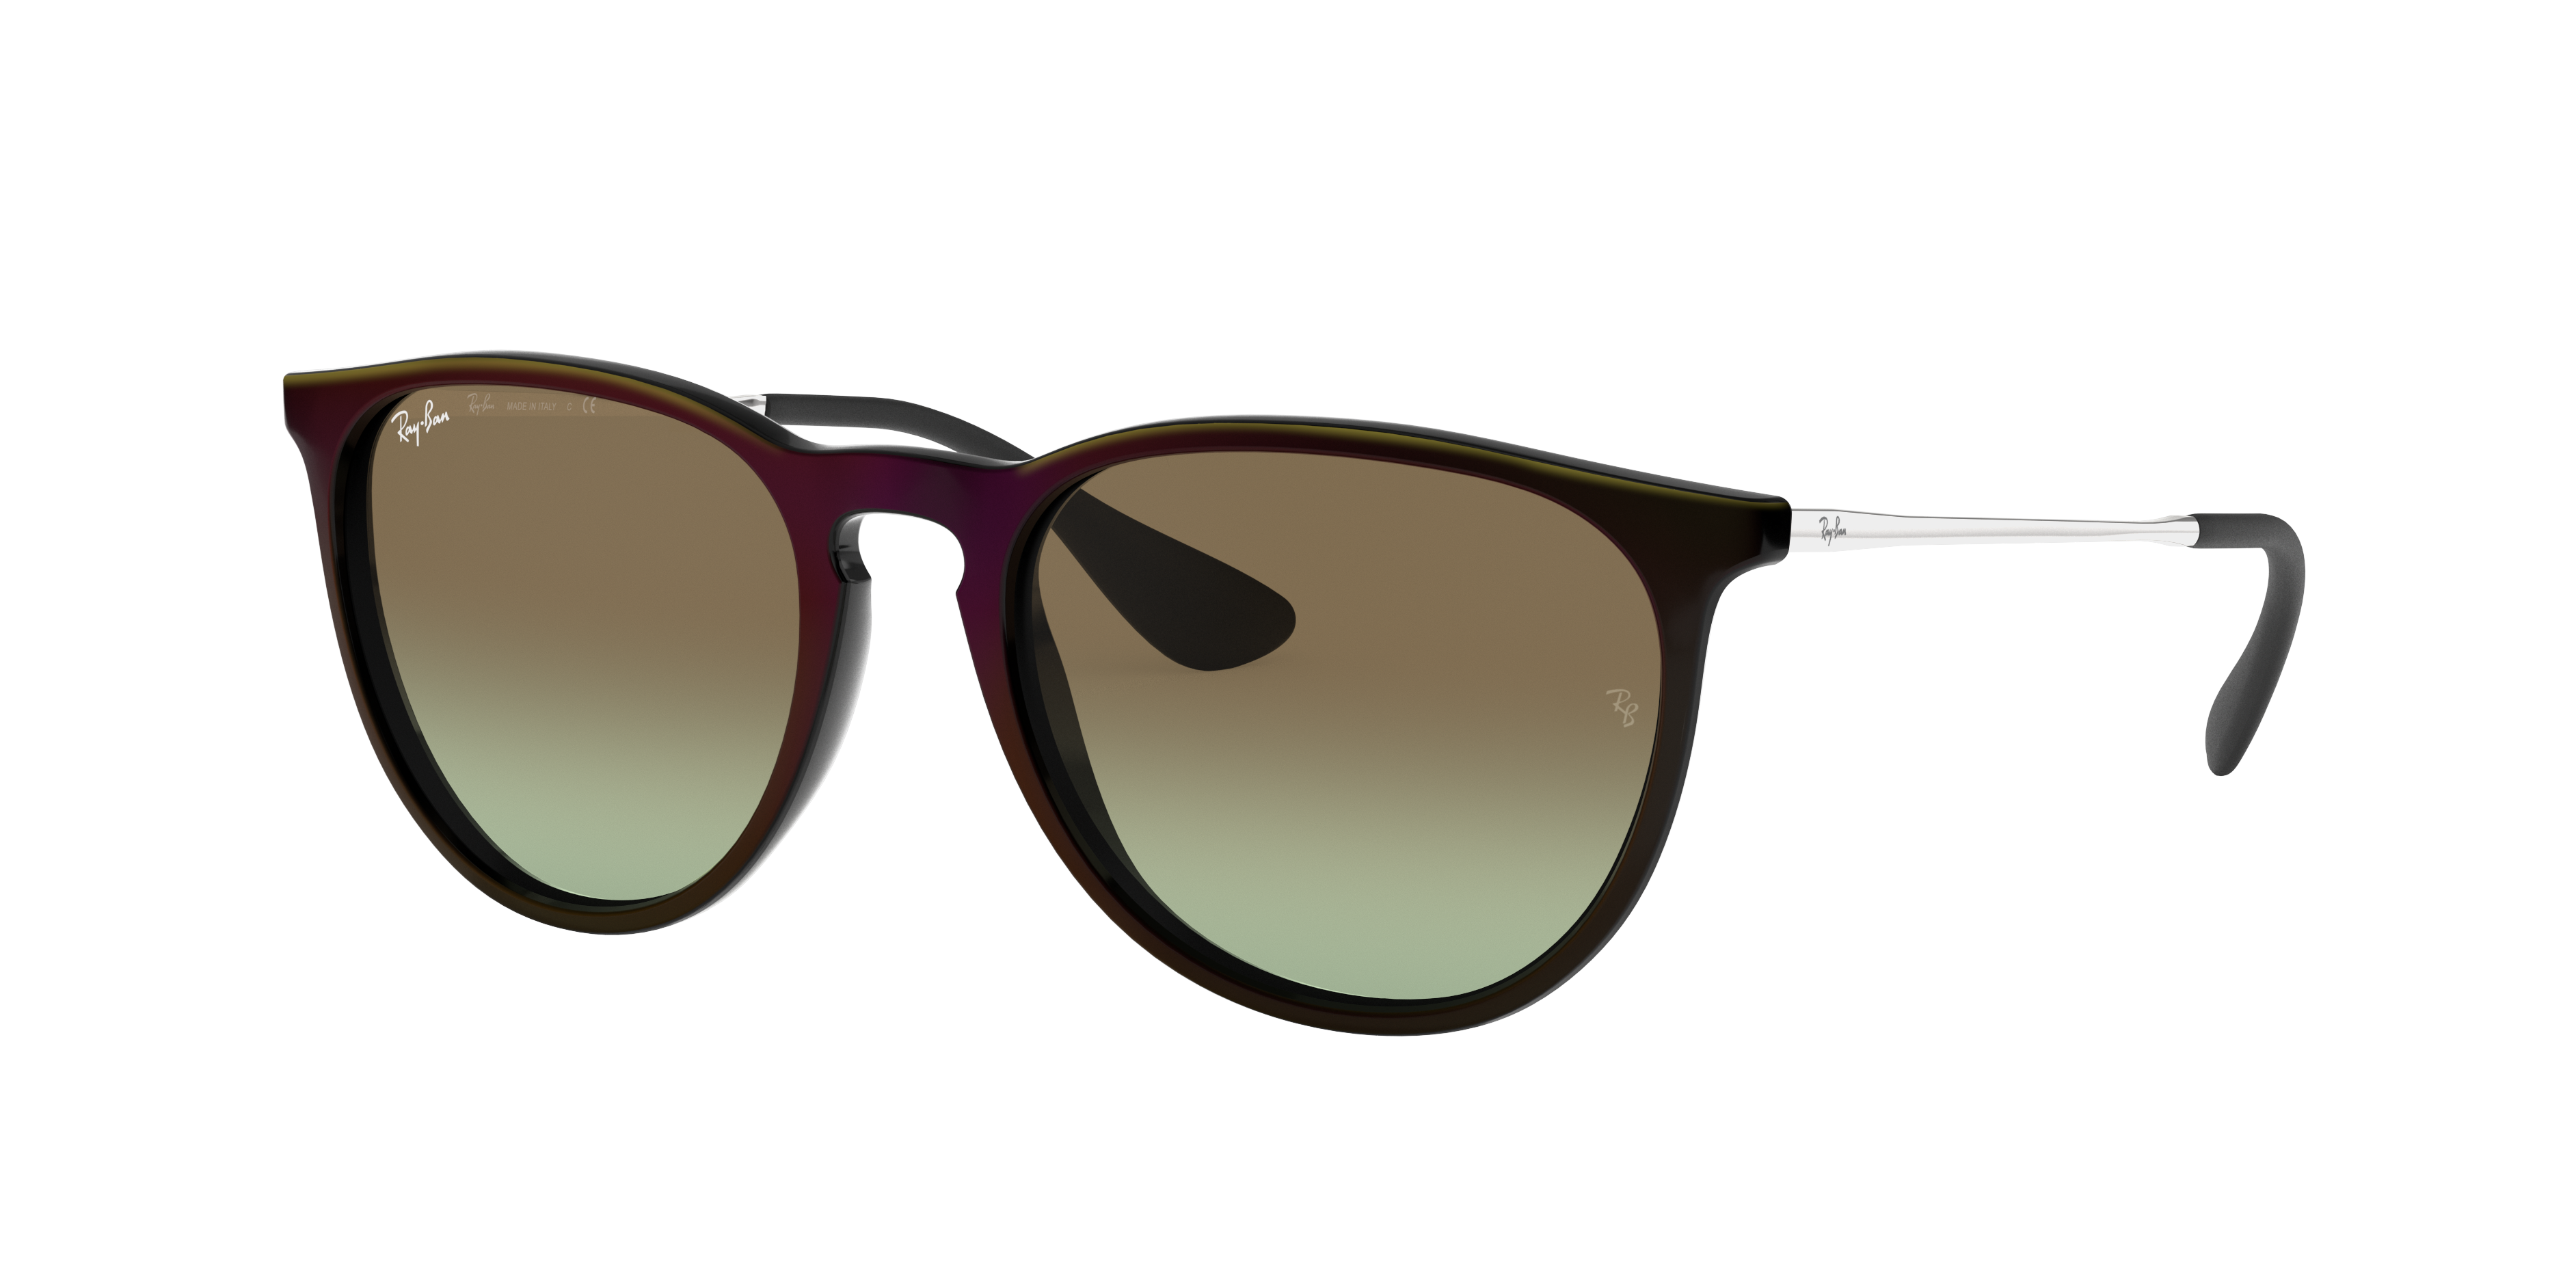 Ray-Ban Erika Classic Silver, Brown Lenses - RB4171